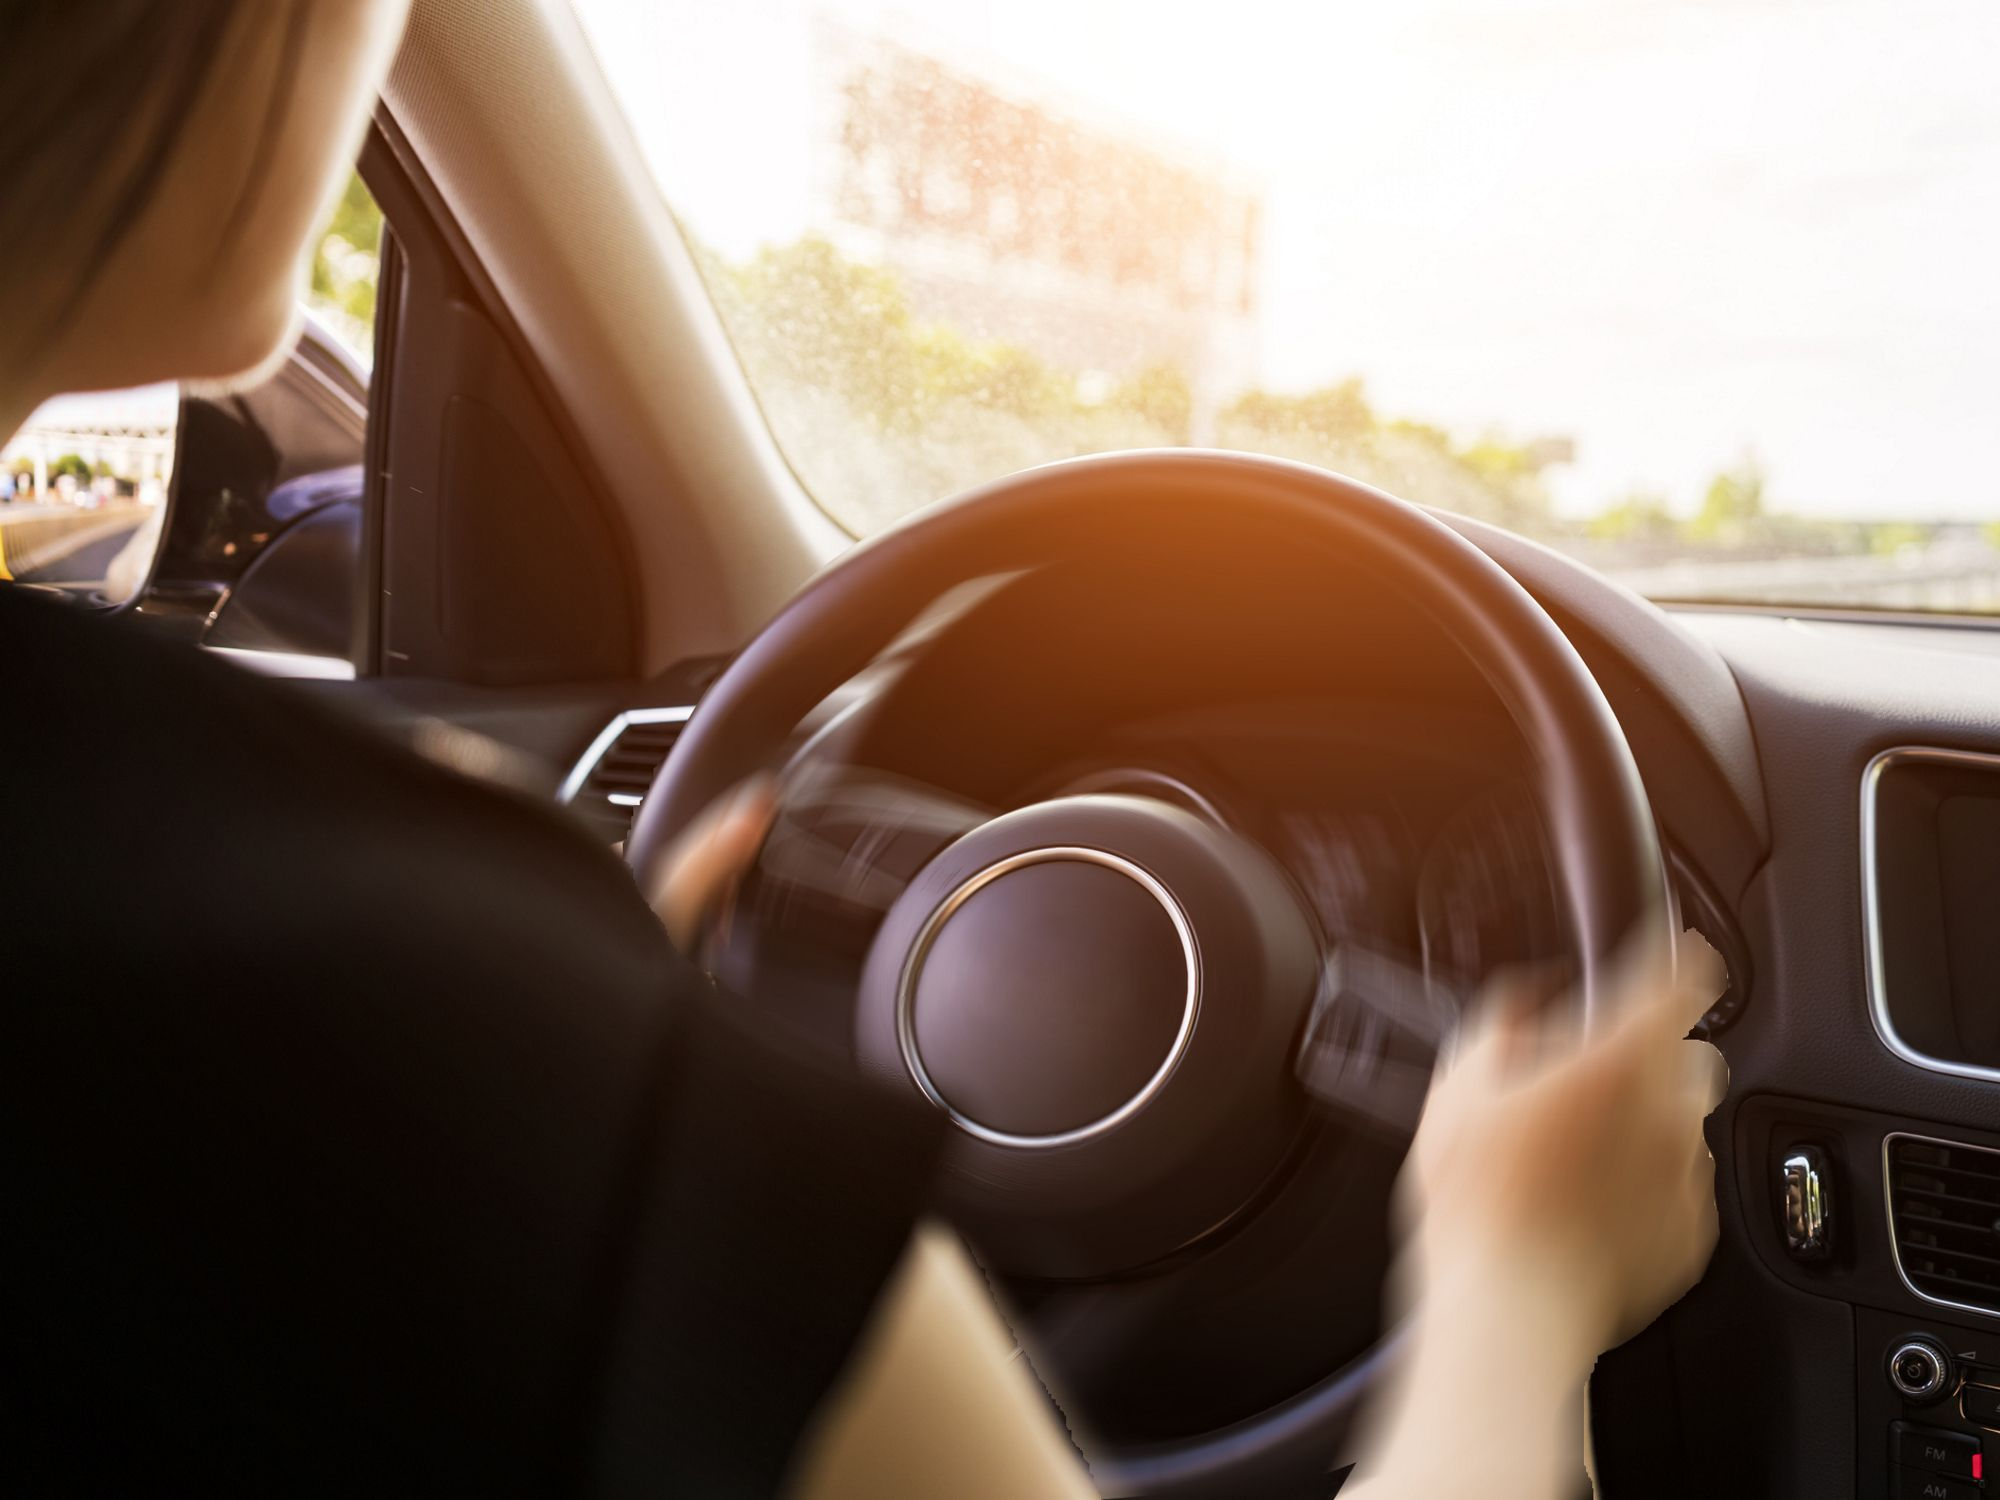 Why Is My Steering Wheel Shaking? Causes and Solutions